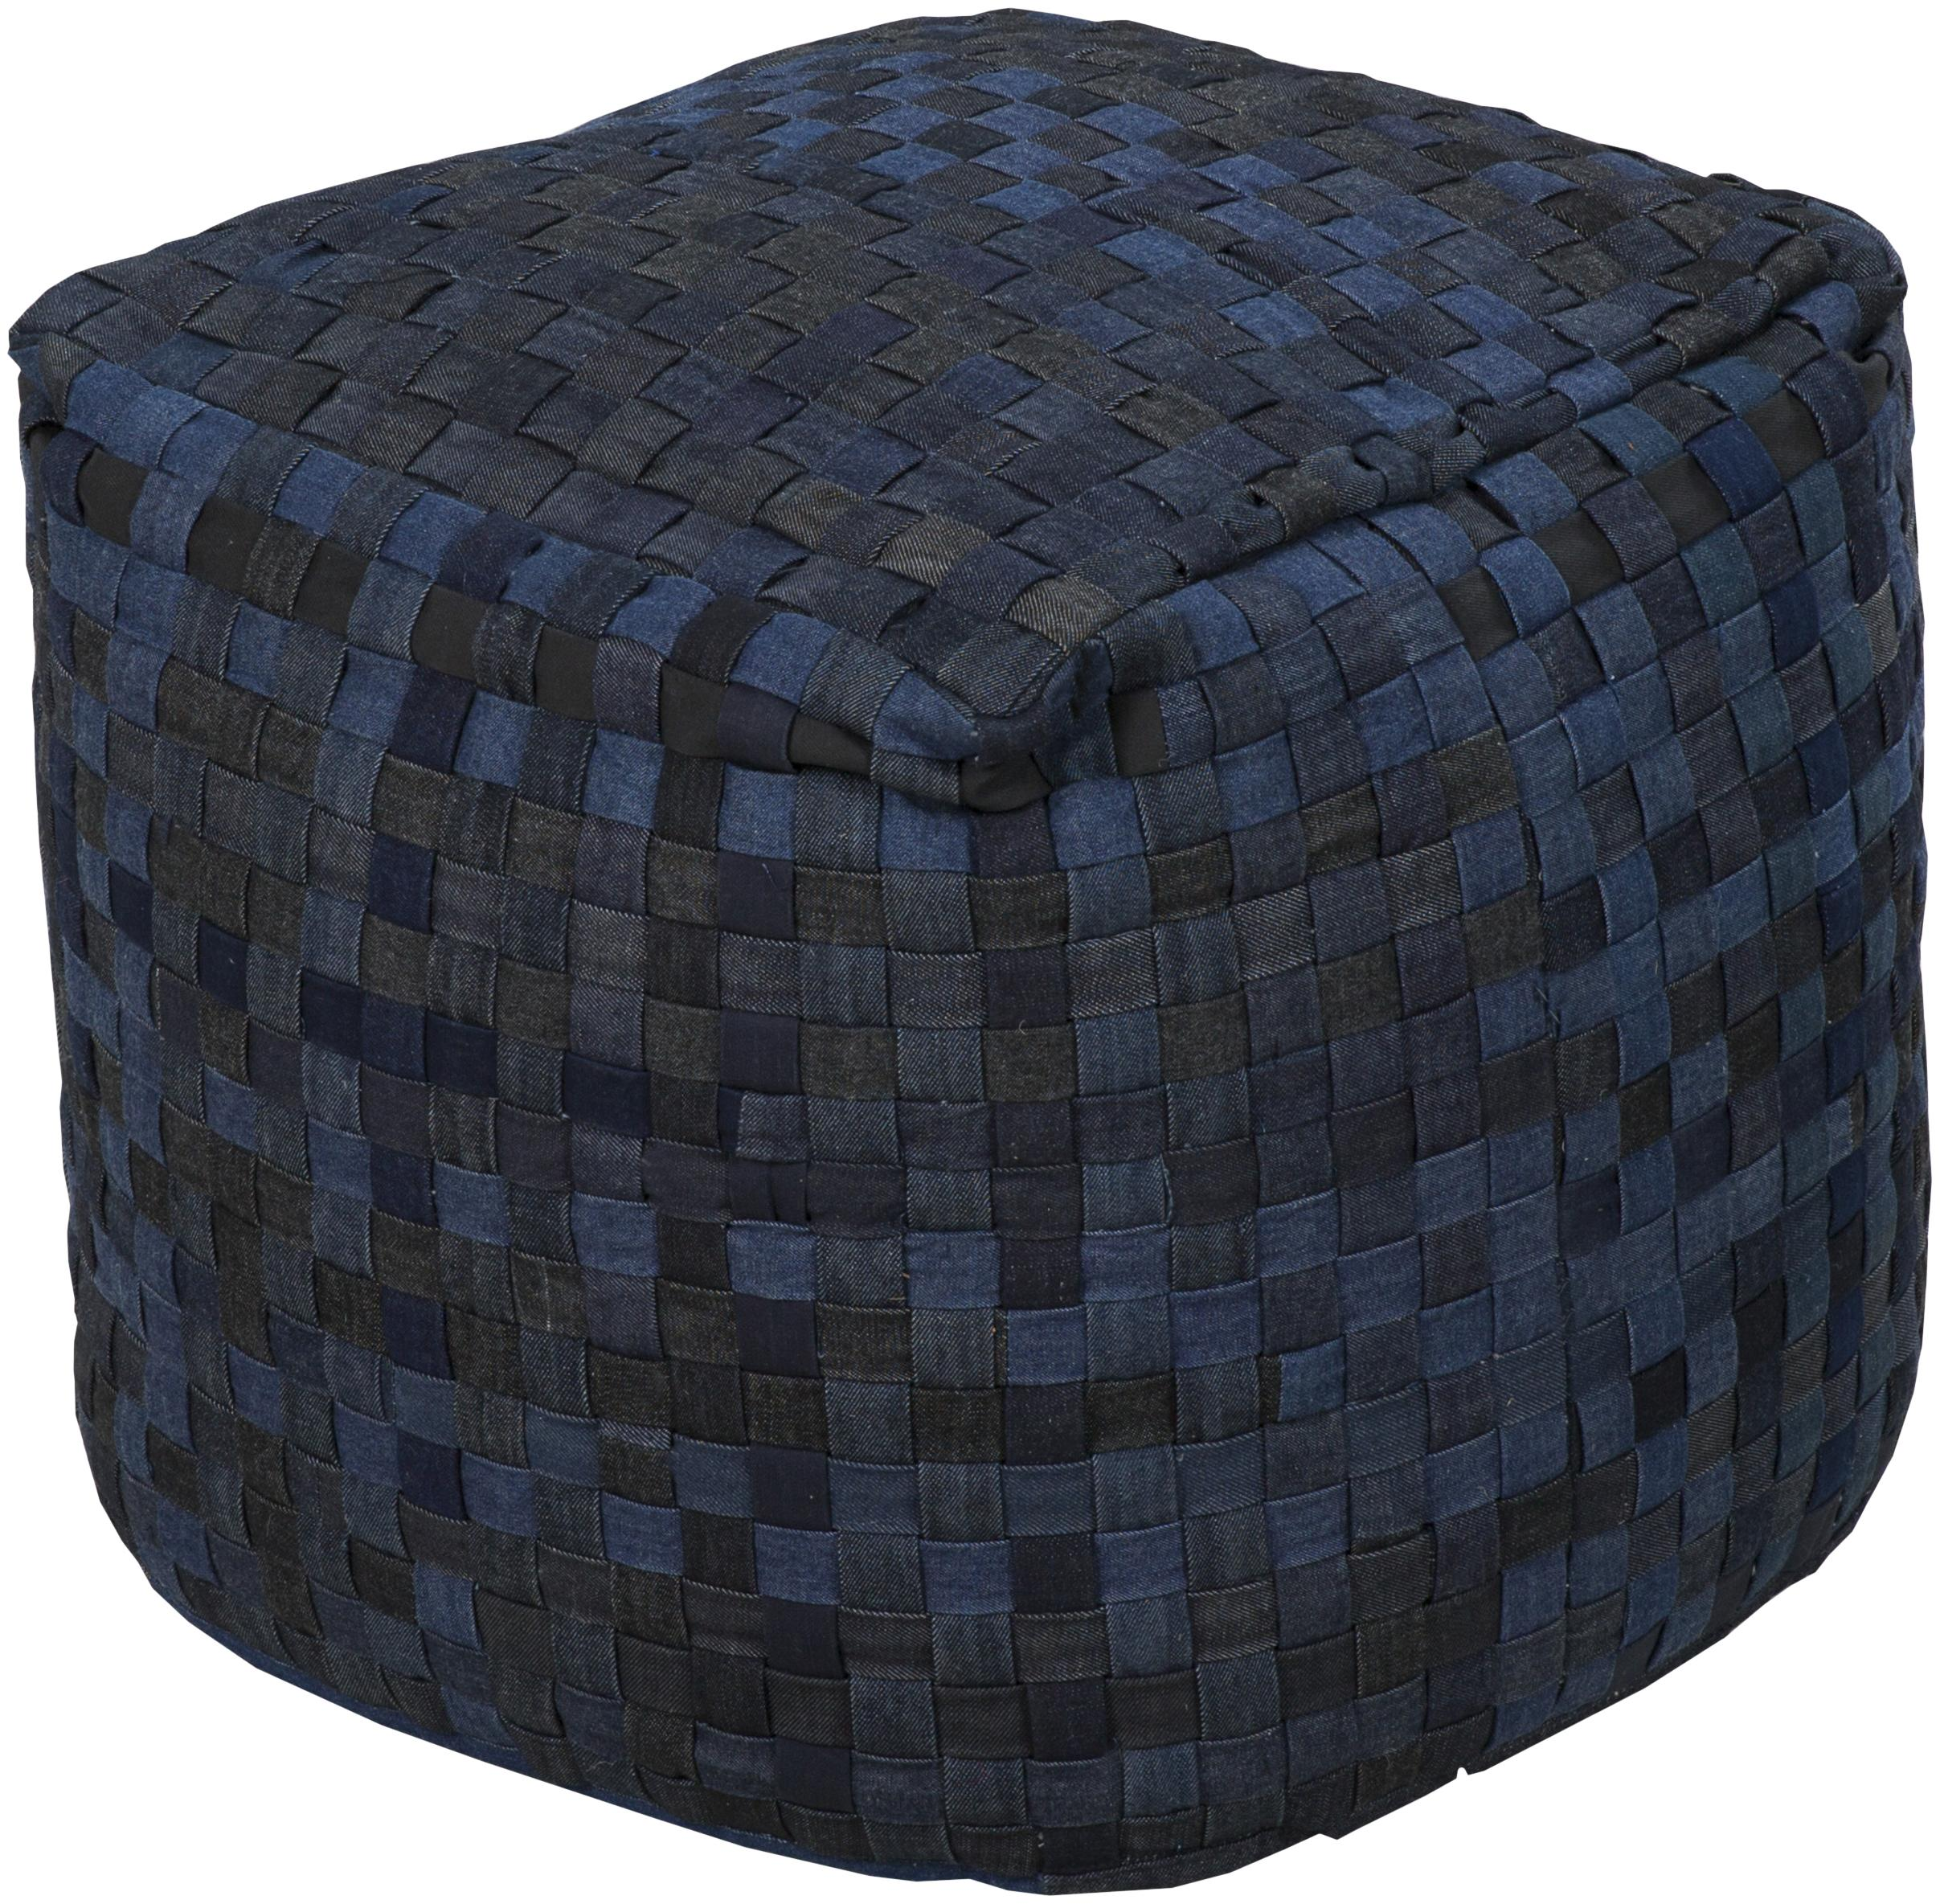 surya poufs pouf 103 18 x18 x18 pouf del sol furniture textiles poufs. Black Bedroom Furniture Sets. Home Design Ideas